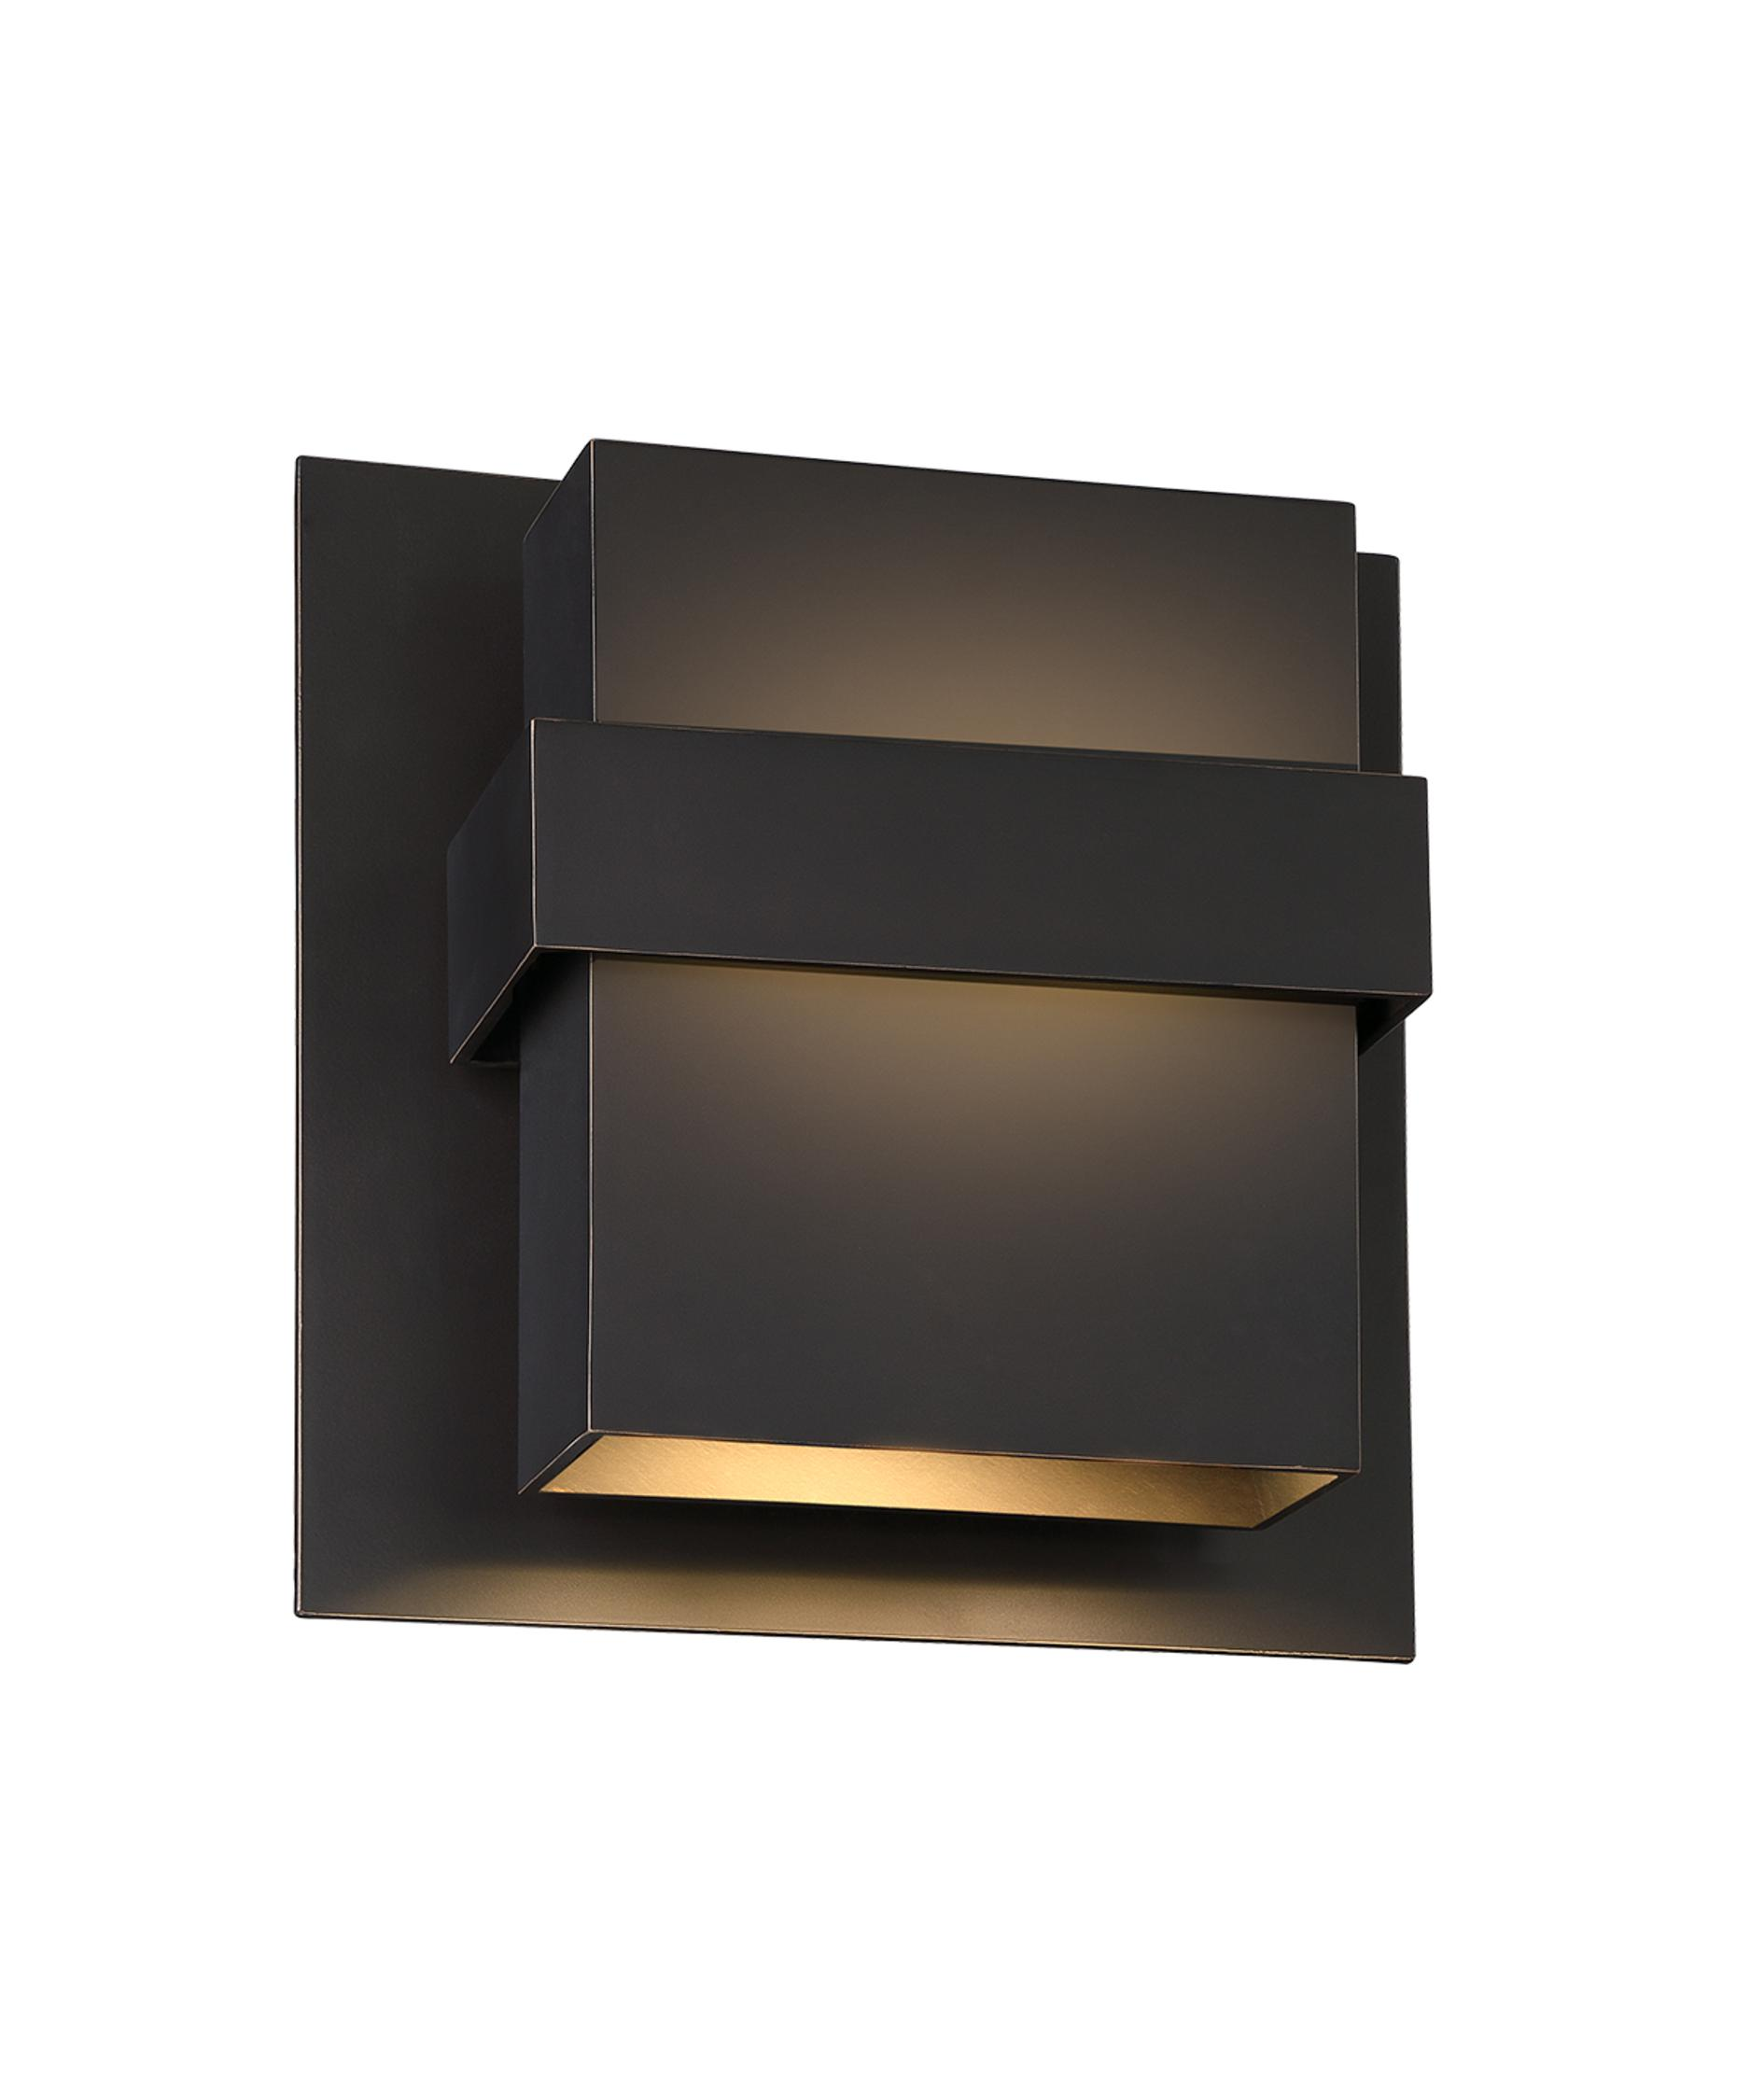 modern forms wsw30511 pandora 11 inch wide 1 light outdoor wall light capitol lighting - Modern Forms Lighting